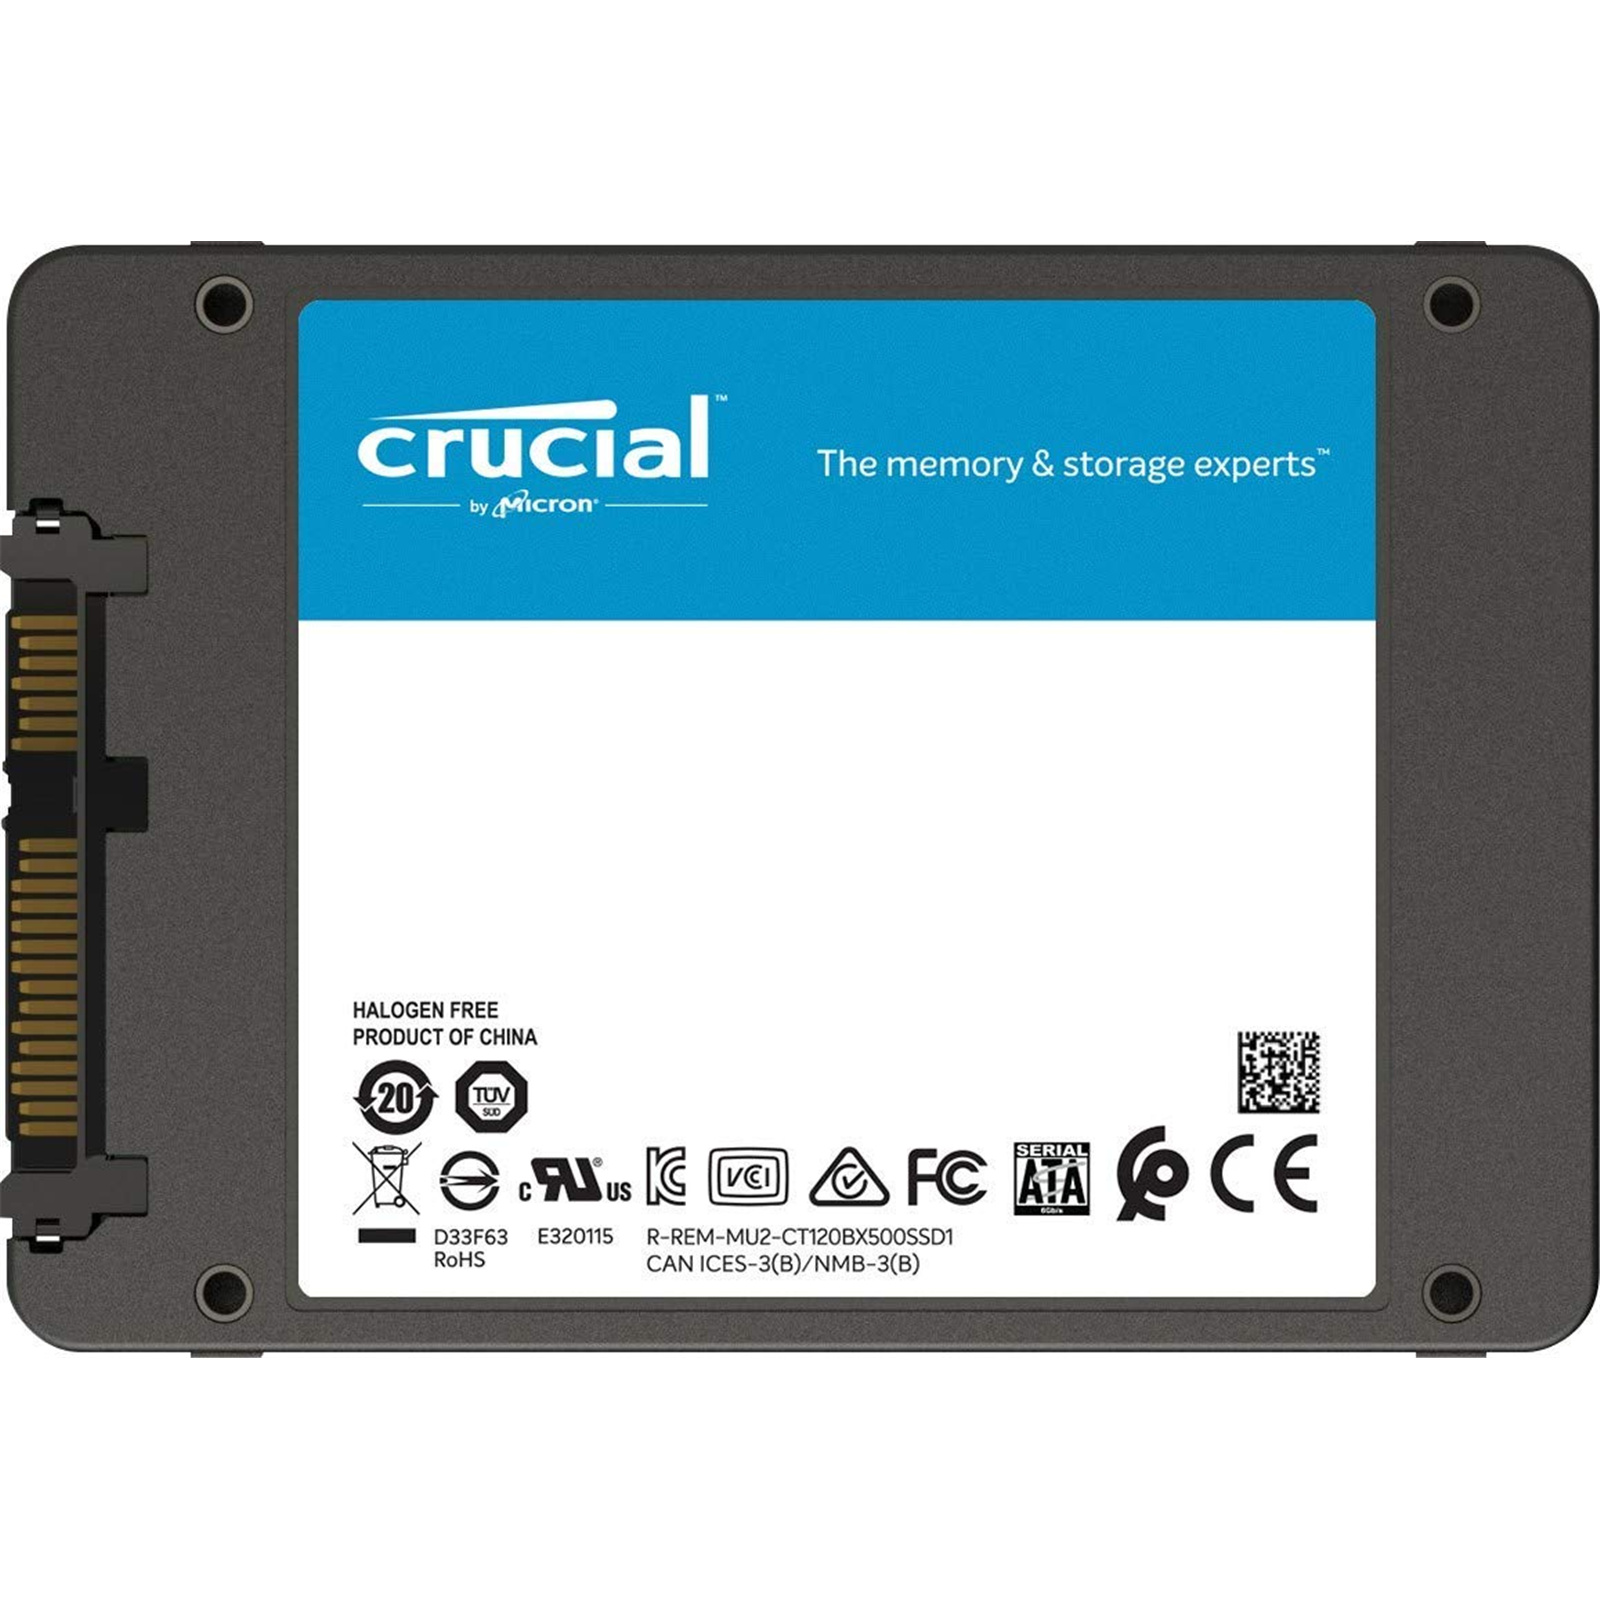 Buy The Crucial Bx500 240gb 25 Inch Ssd Sata 60gb S Up To 540mb Wd Green Read 500mb Write 7mm